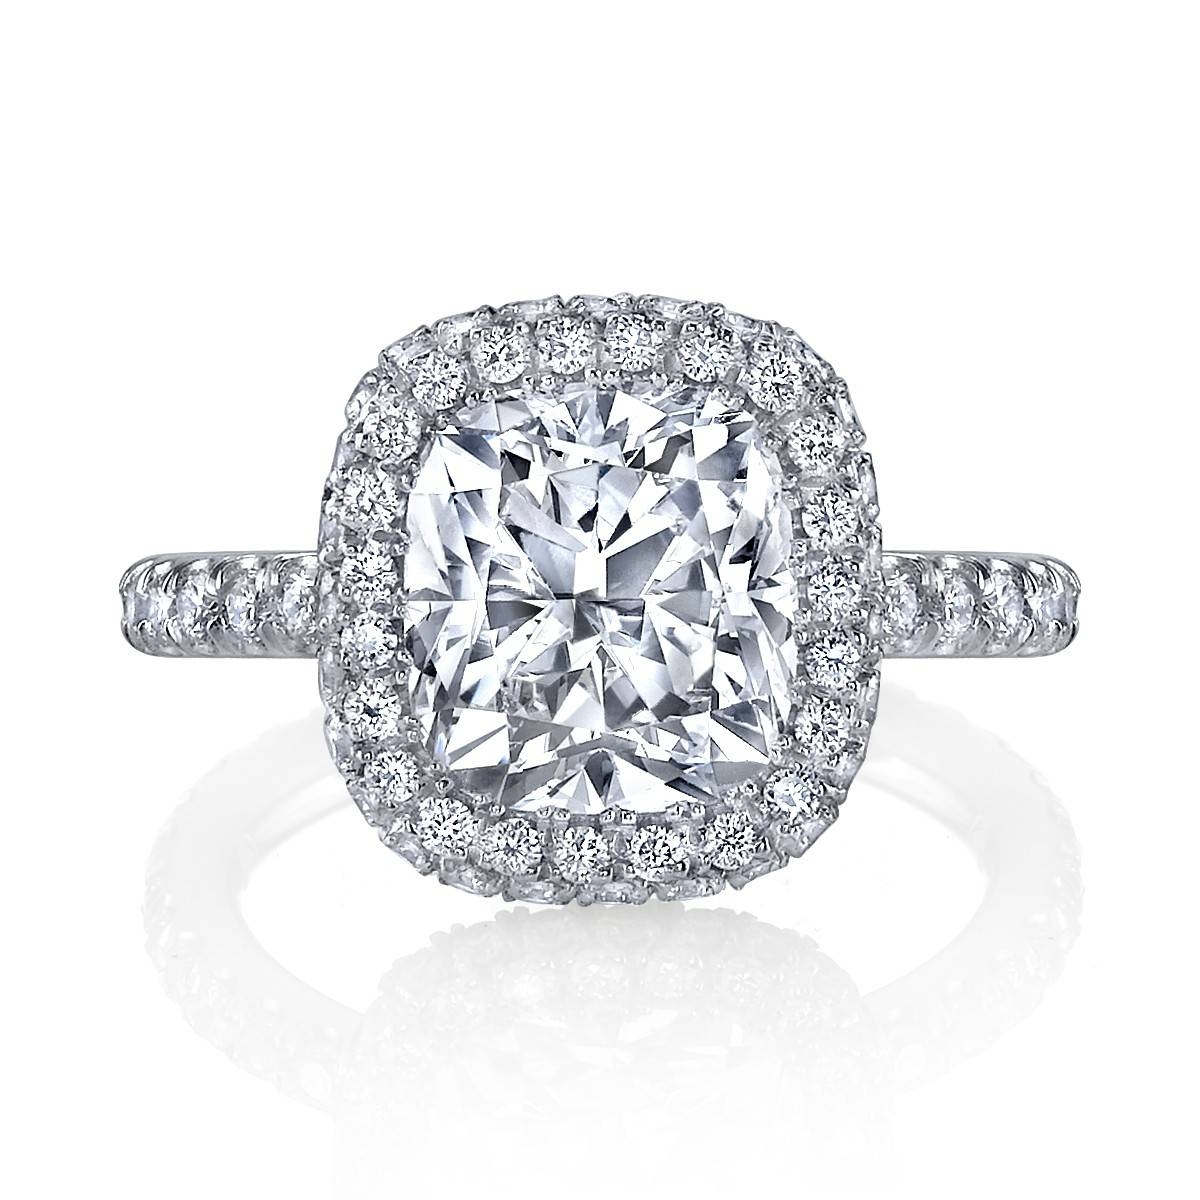 Wedding Rings : 1 Million Dollar Wedding Ring : Alexandriakelly Within 1 Million Dollar Engagement Rings (View 11 of 15)